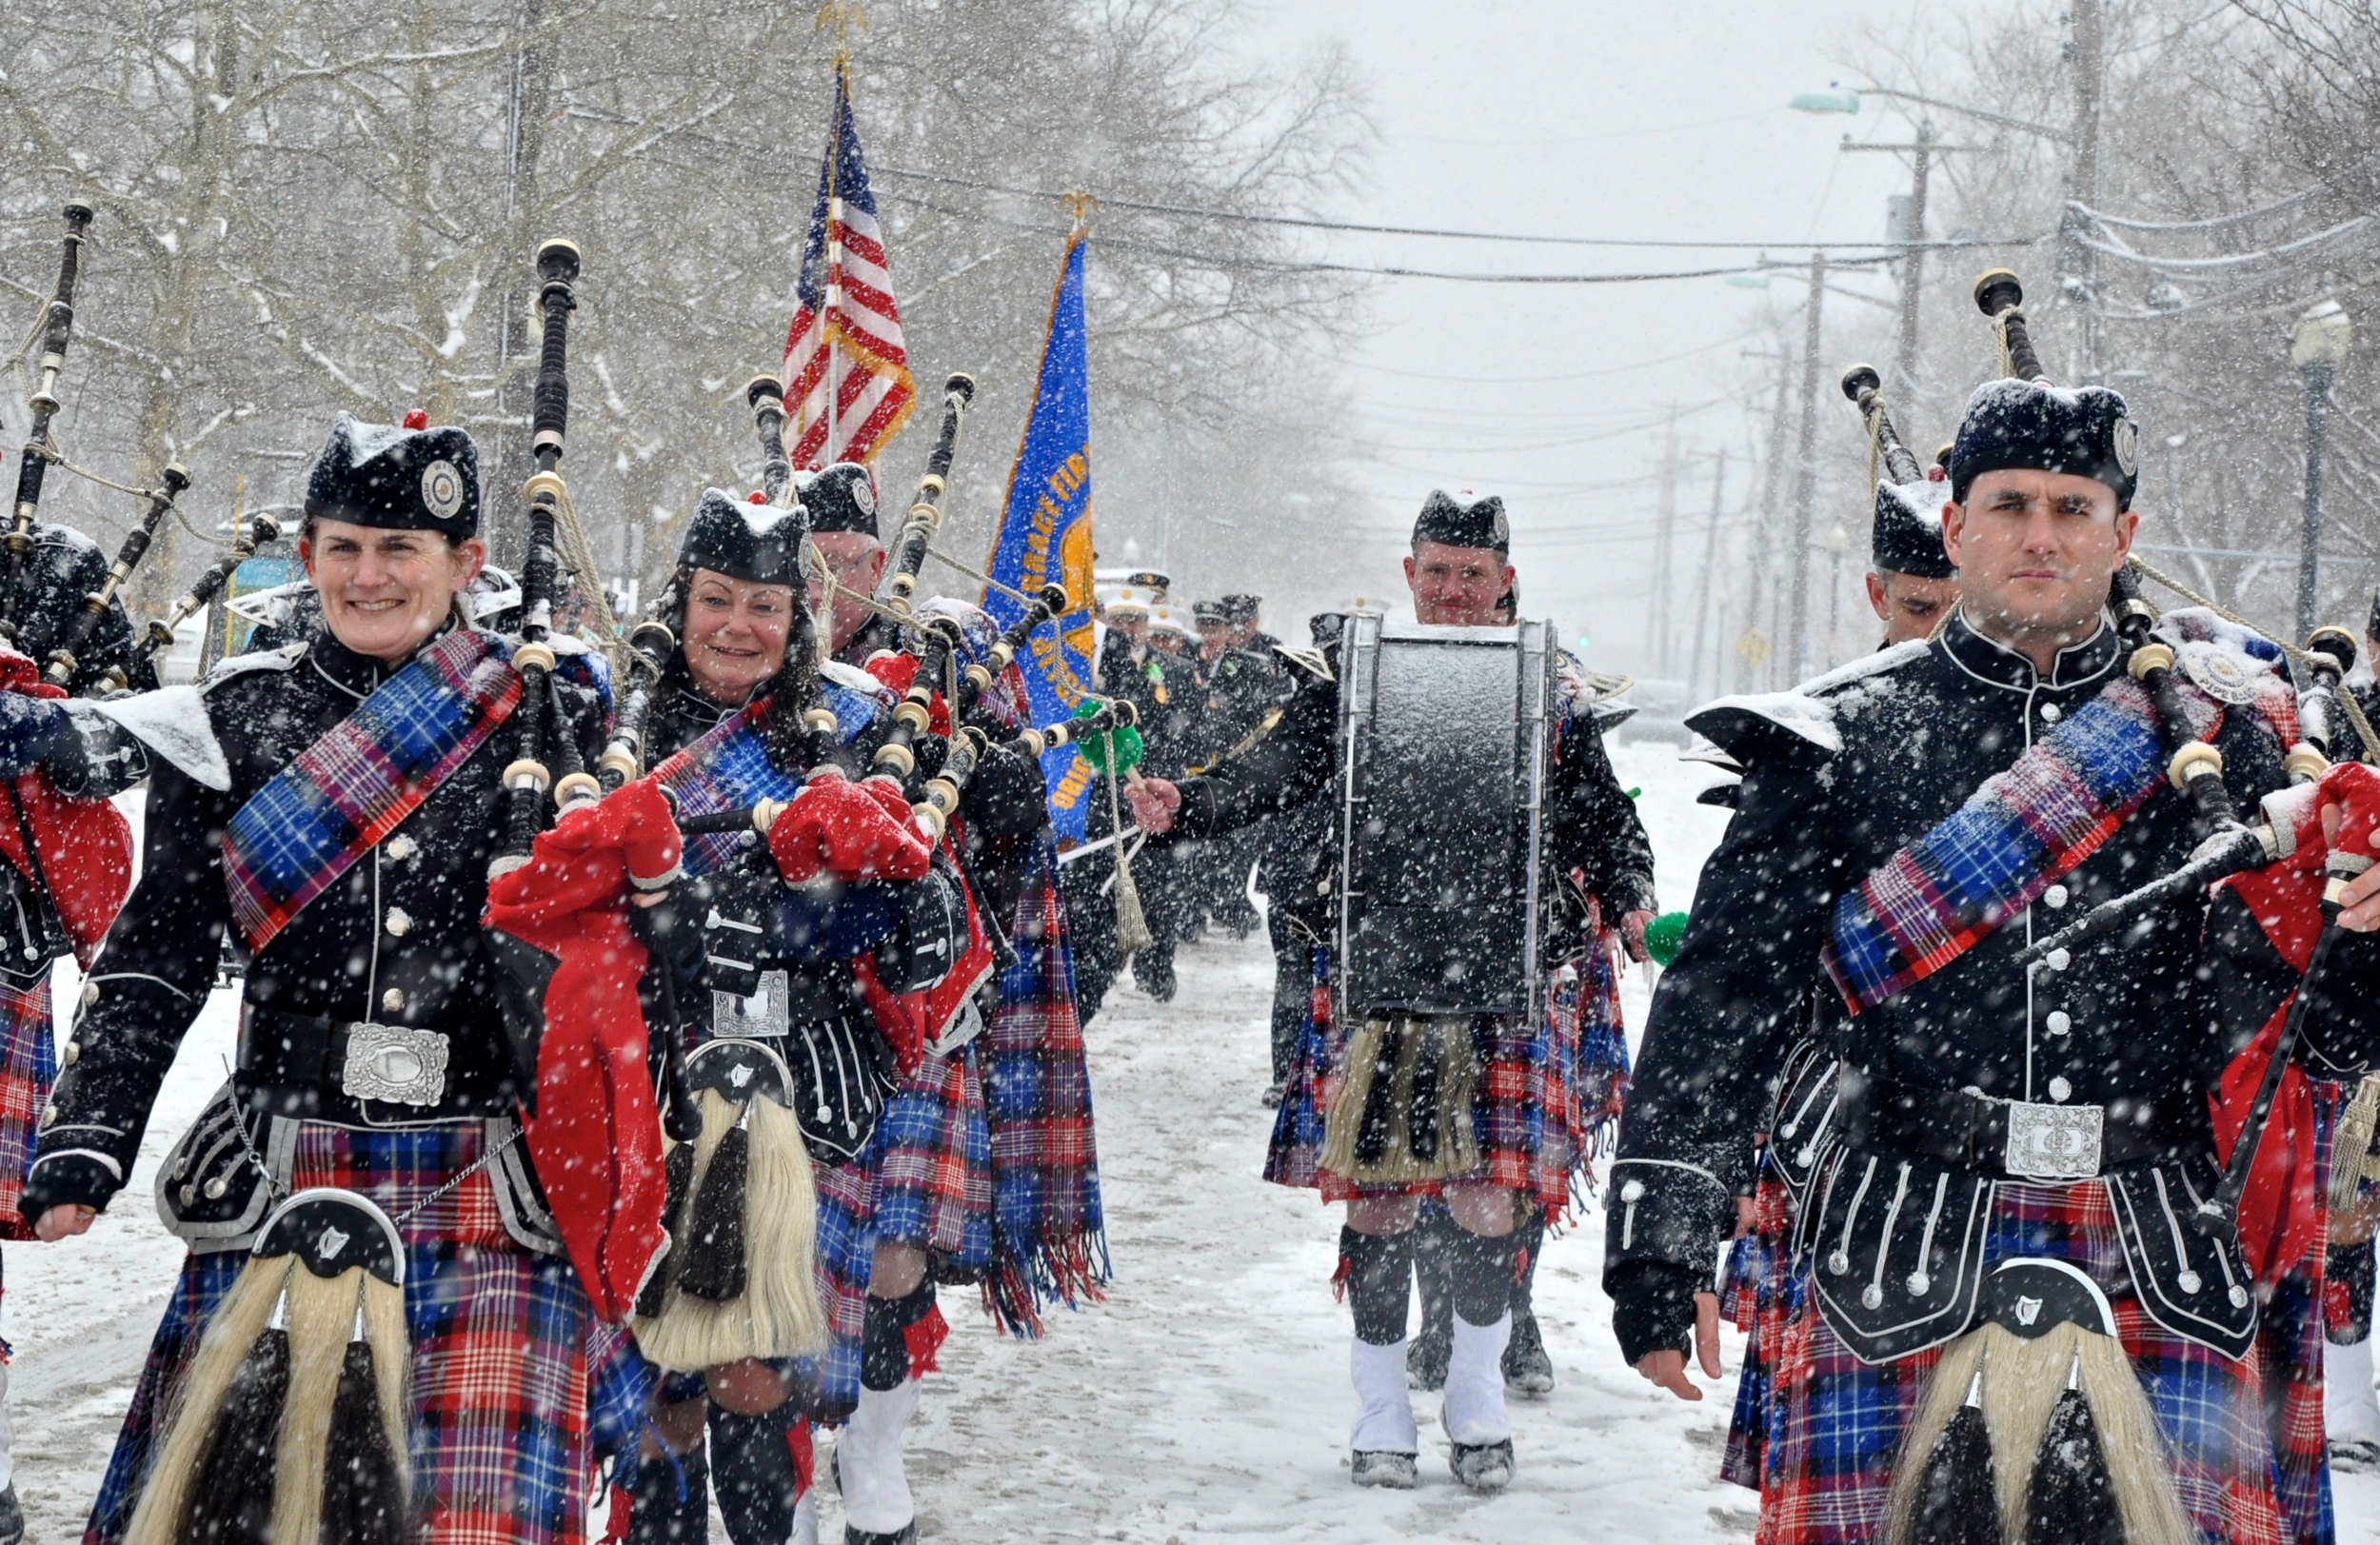 The Wantagh American Legion Pipe Band marches in the snow at the John P. Reilly Memorial East Islip St. Patrick's Day parade on Sunday, March 1, 2015. (Photo: Joseph Kellard)